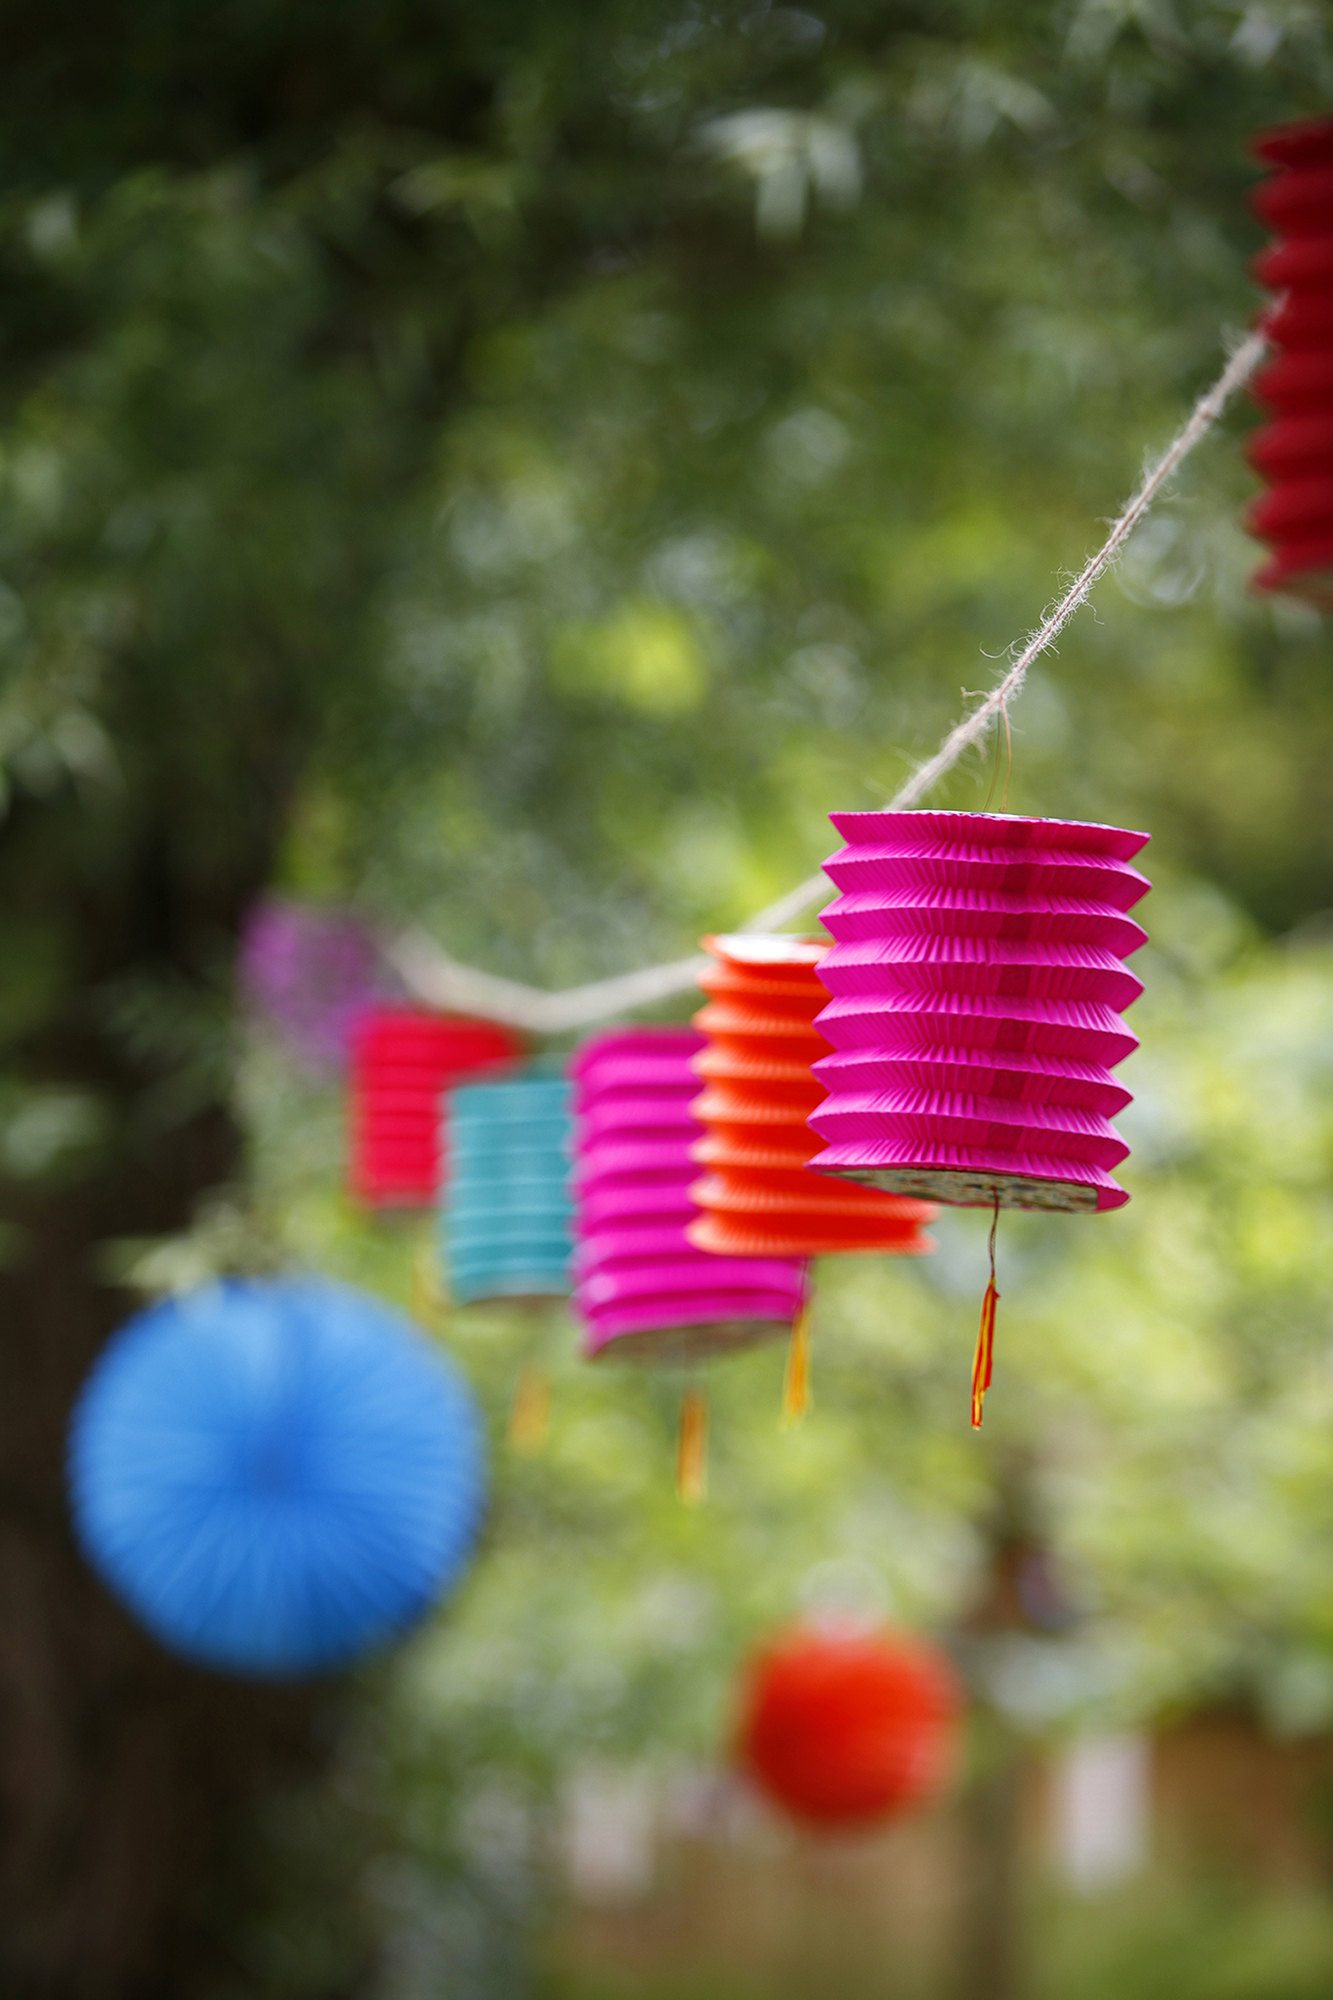 Paper lanterns in a tree